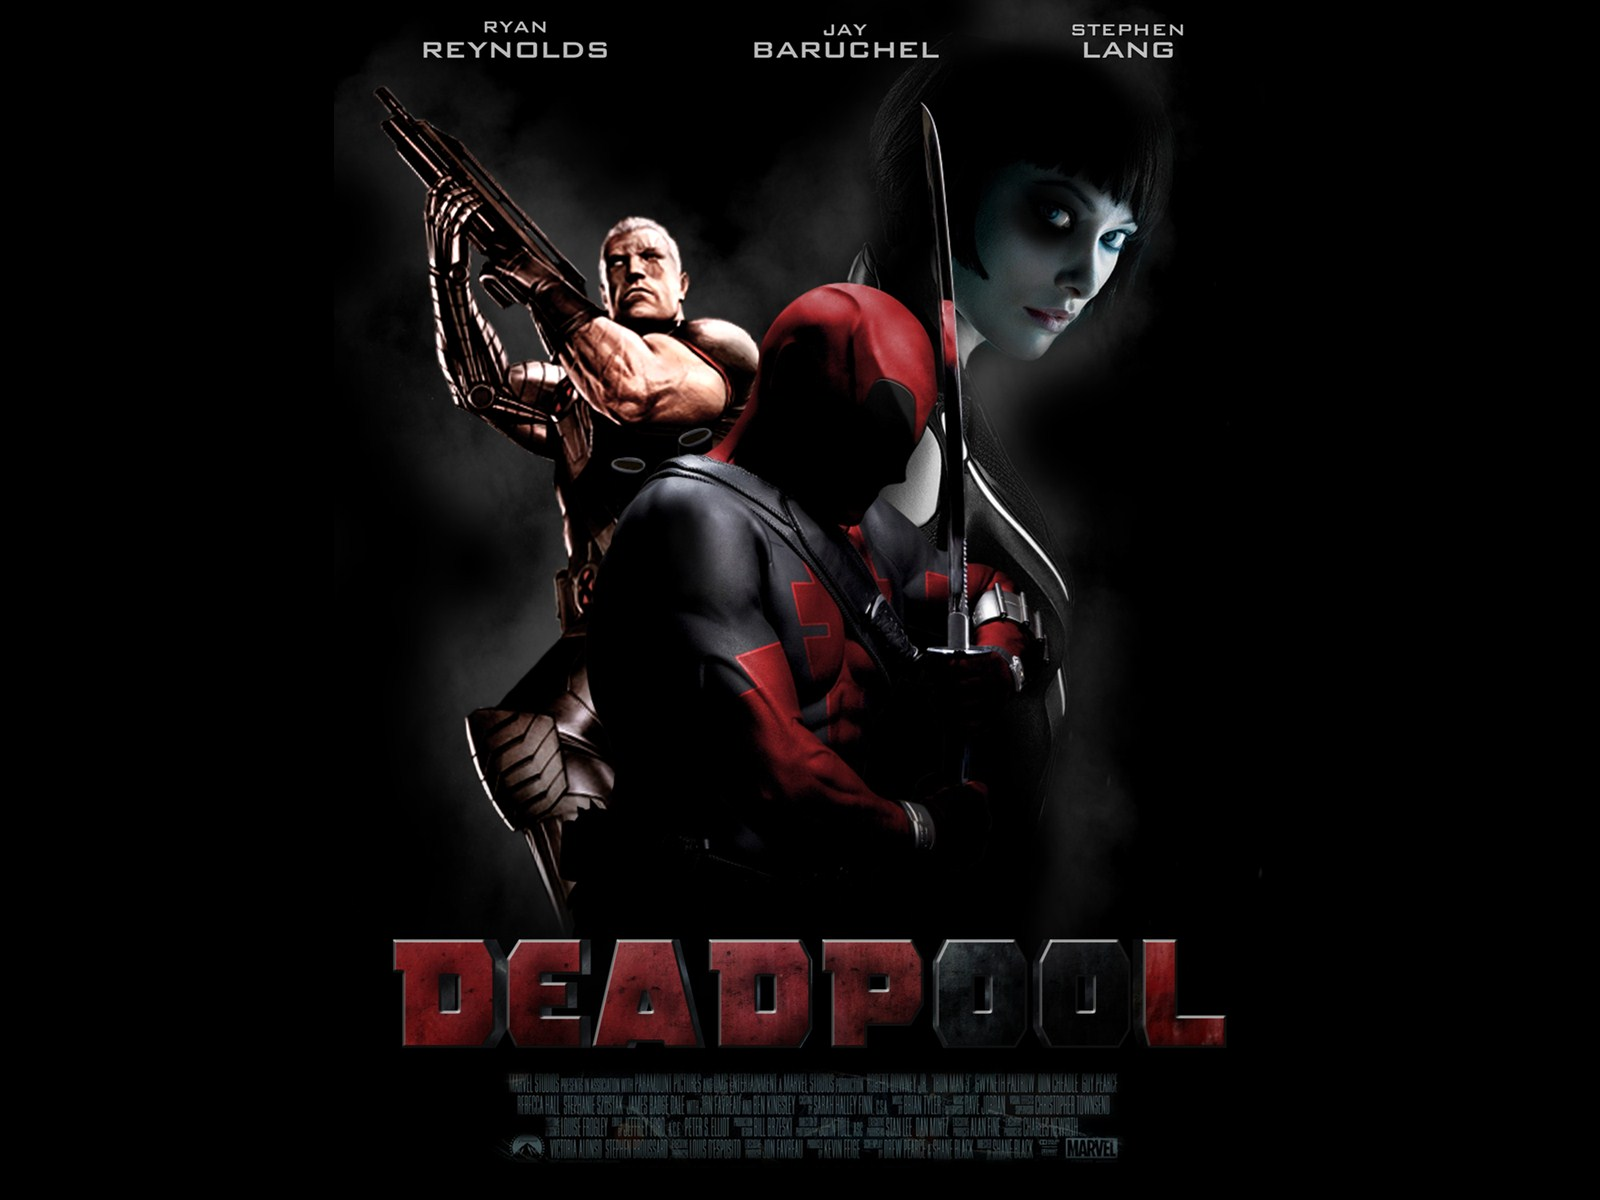 30 2015 By Stephen Comments Off on Deadpool Movie 2016 Wallpaper 1600x1200